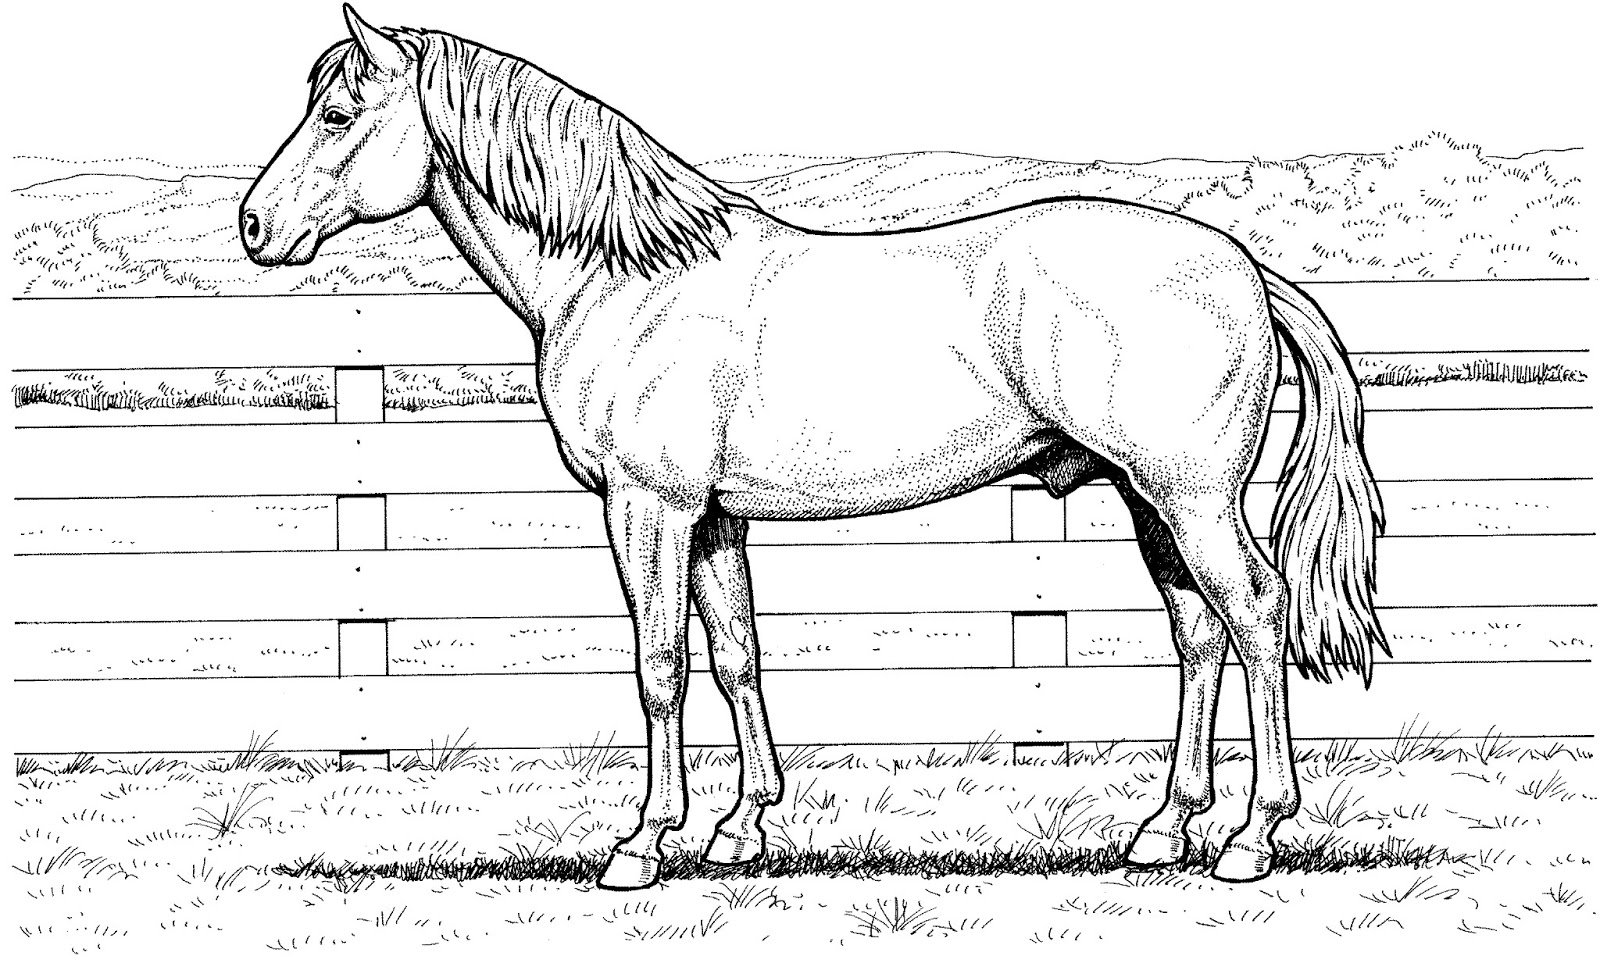 horse coloring image horse coloring pages for kids coloring pages for kids coloring image horse